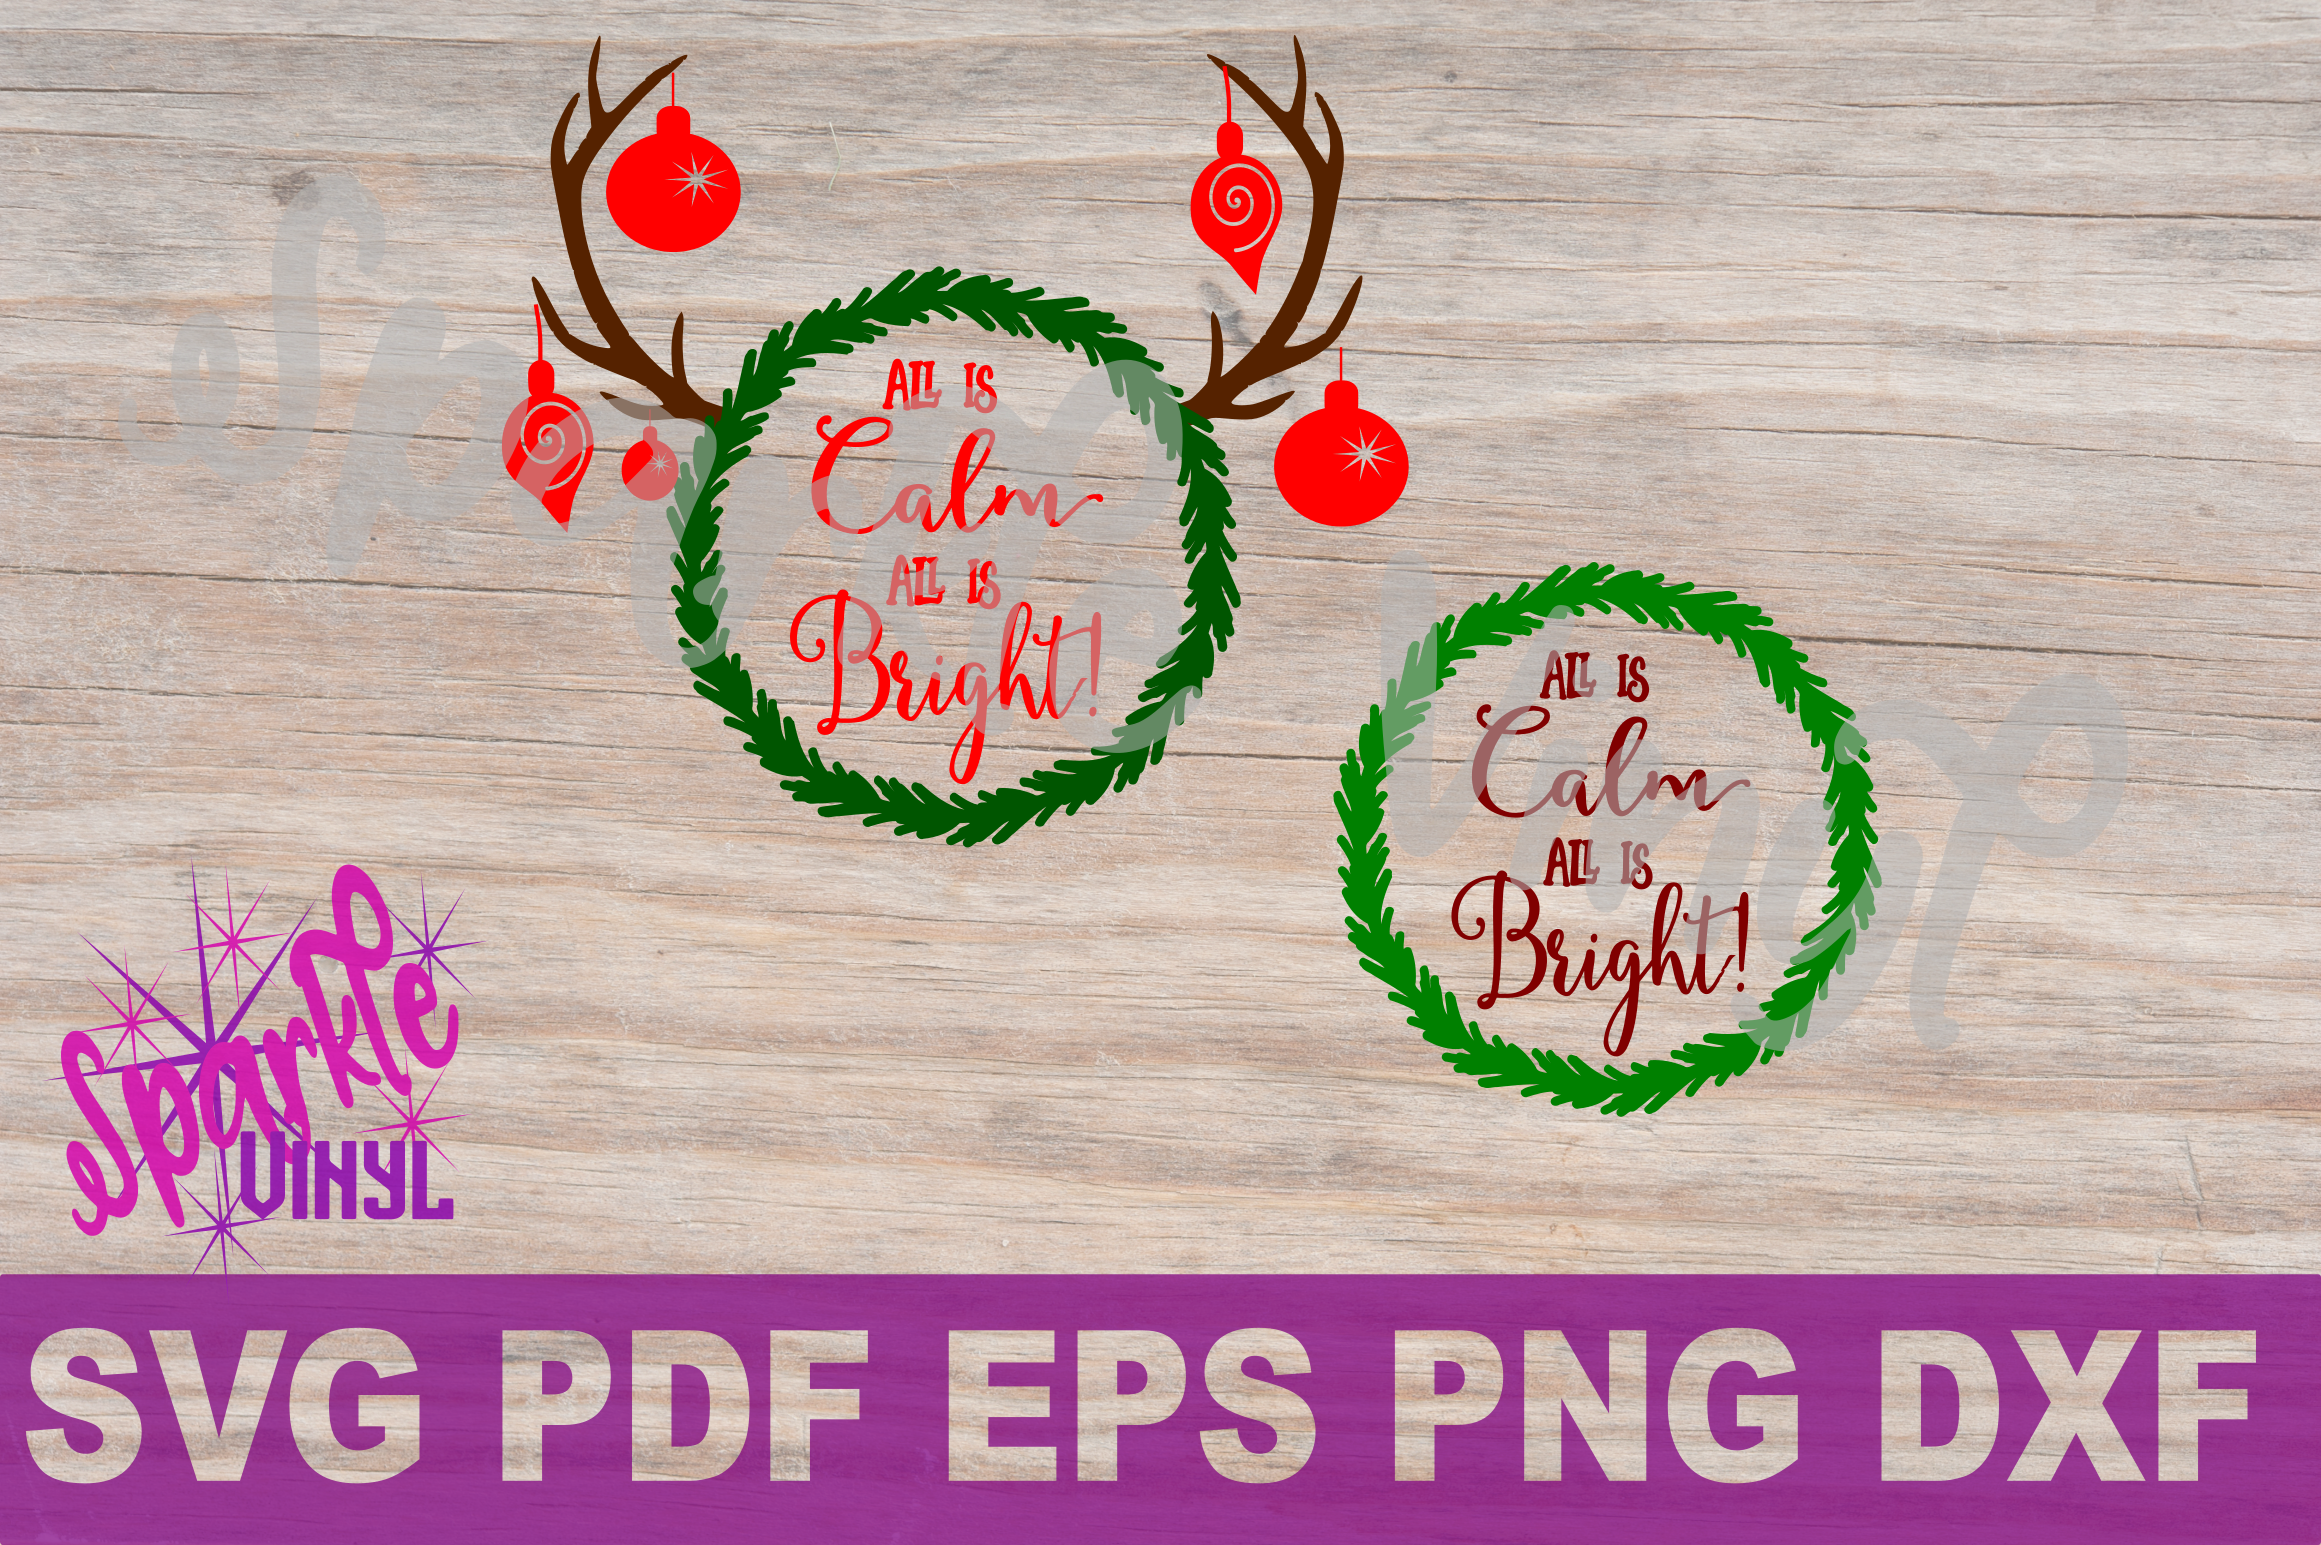 Svg Christmas wreath Antlers All is calm saying Christmas sign stencil  printable or svg dxf eps pdf png cut files for cricut or silhouette example image 1